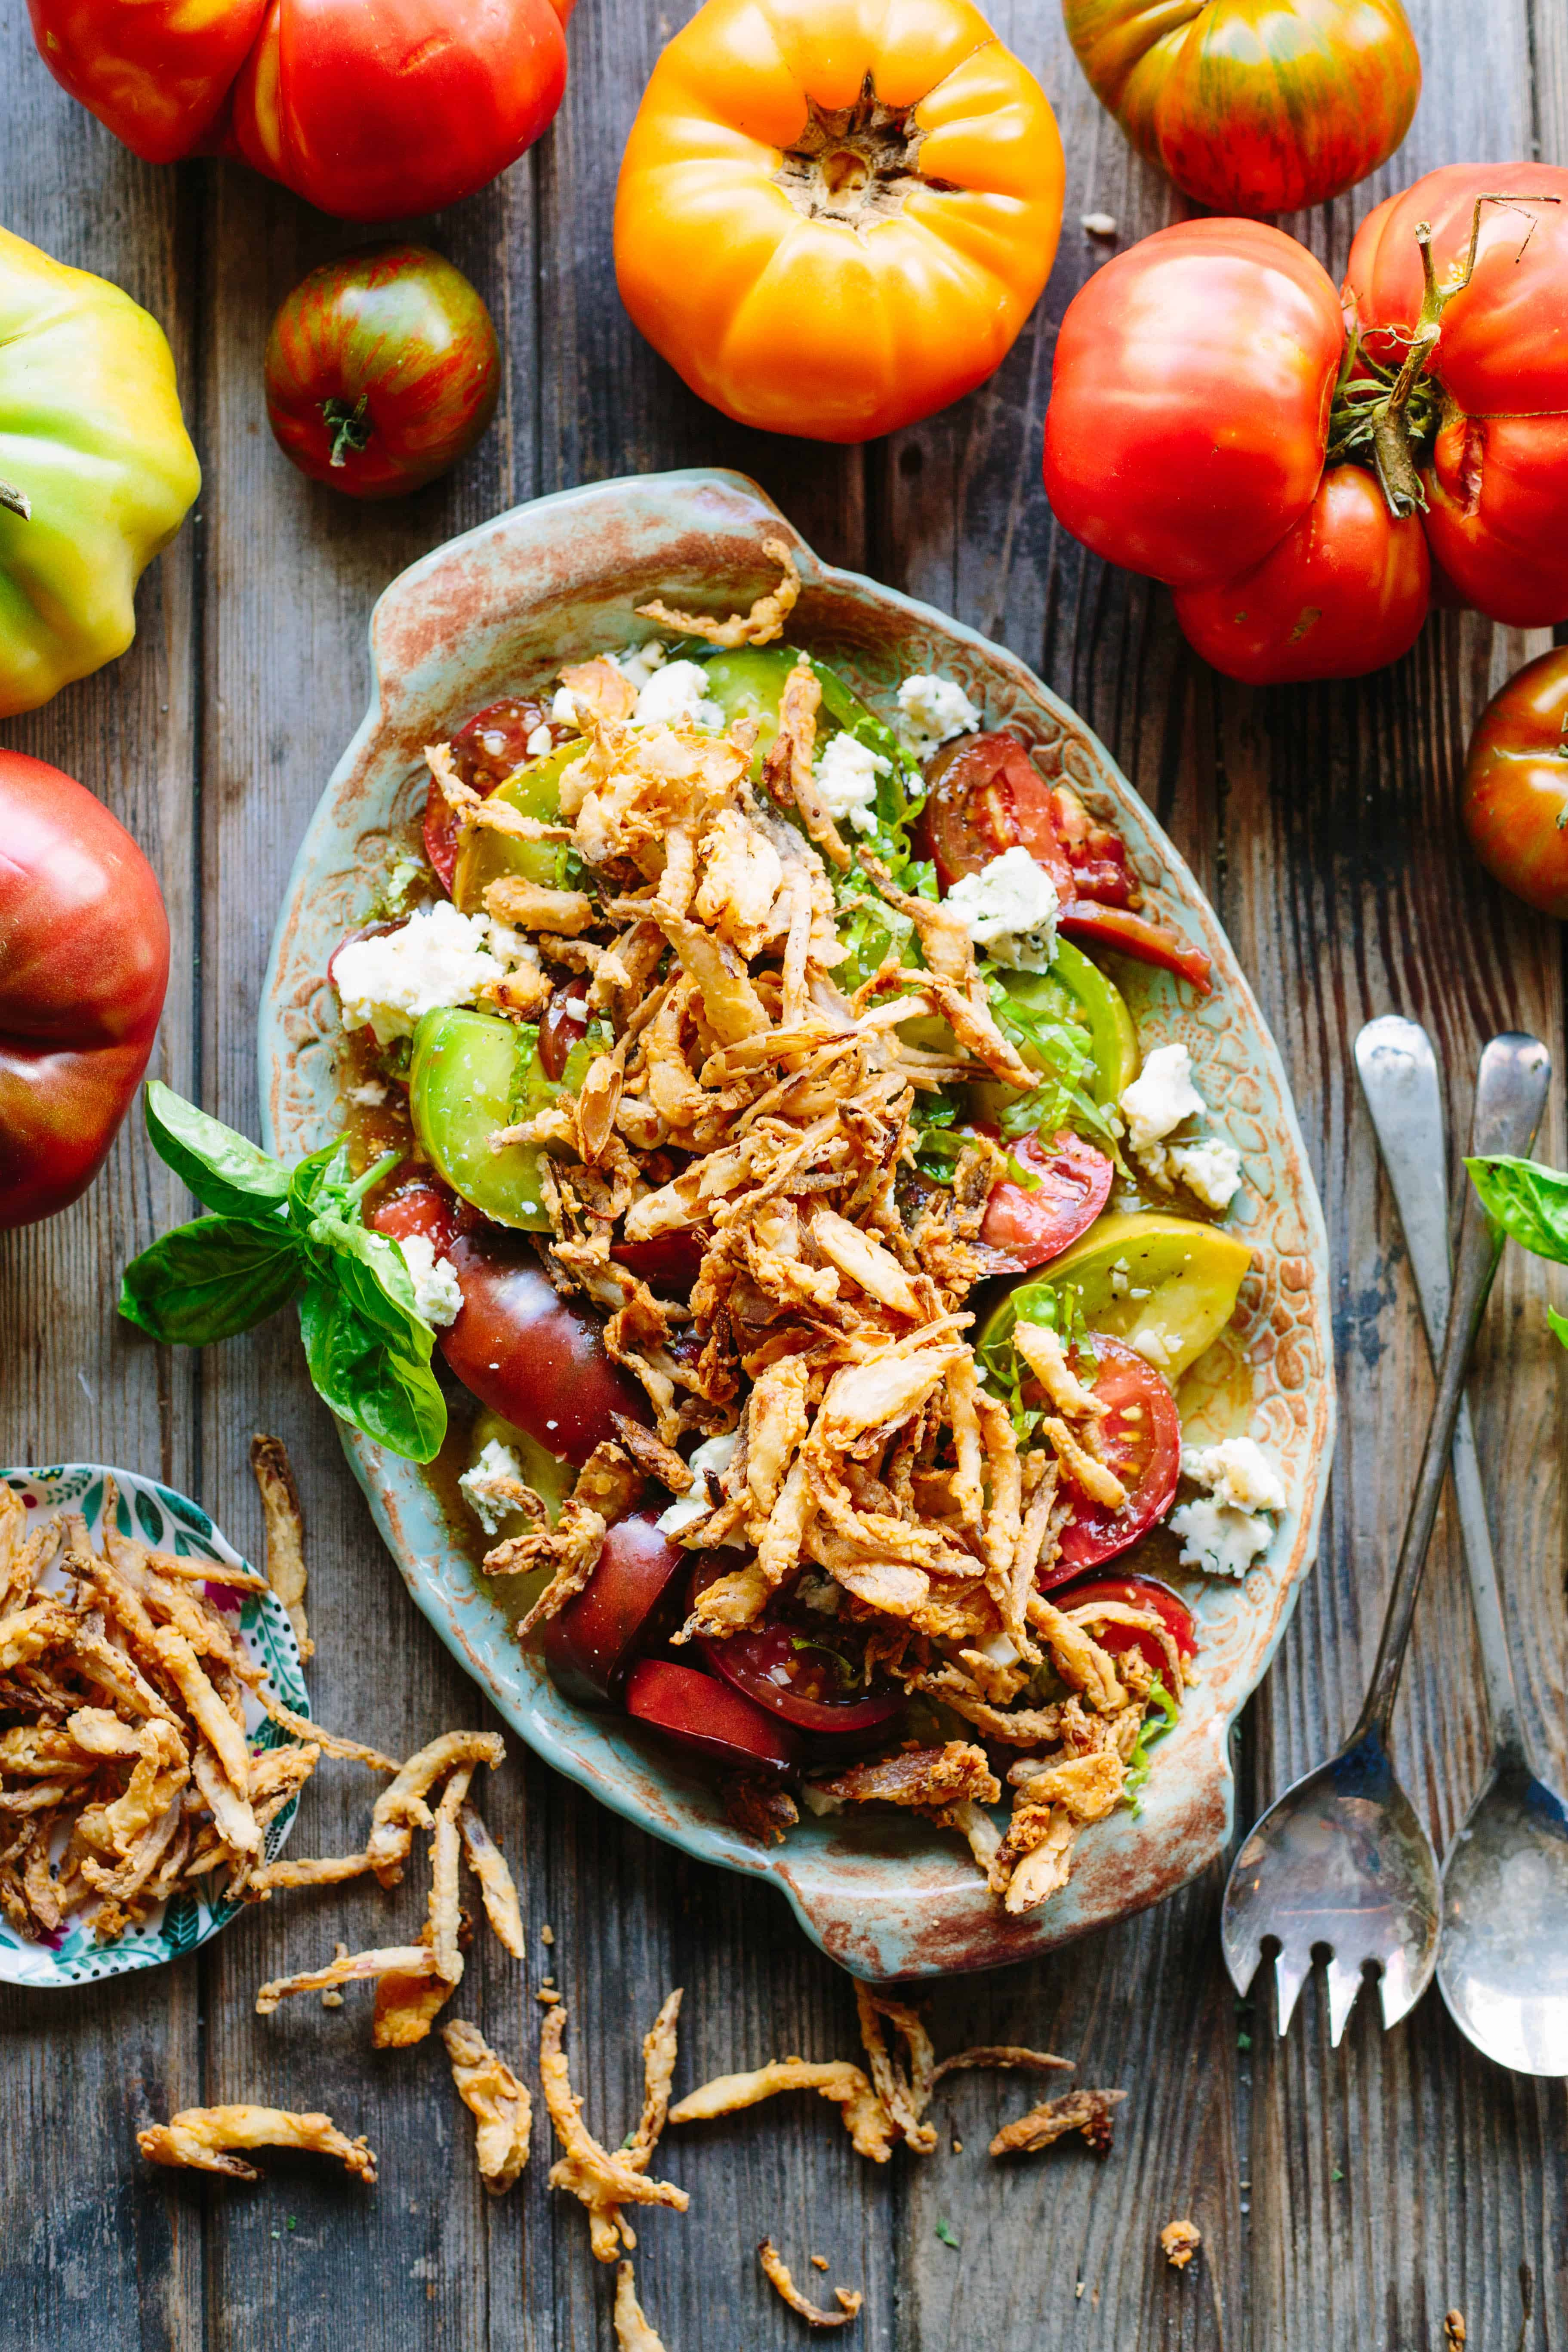 tomato salad with blue cheese and fried shallots